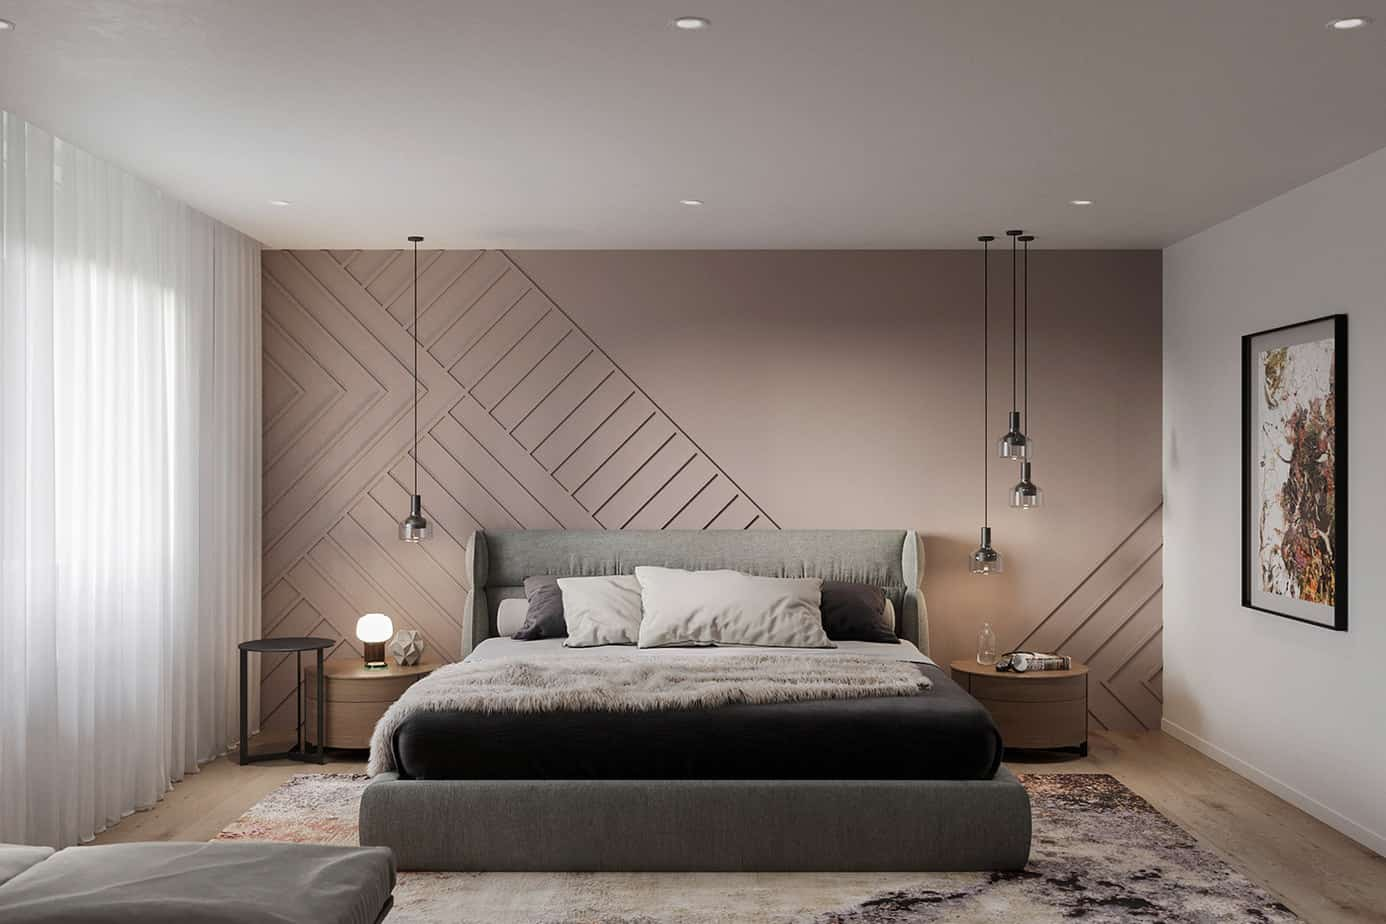 Bedroom Trends 2021 Top 10 Best Design Ideas and Styles for 2021